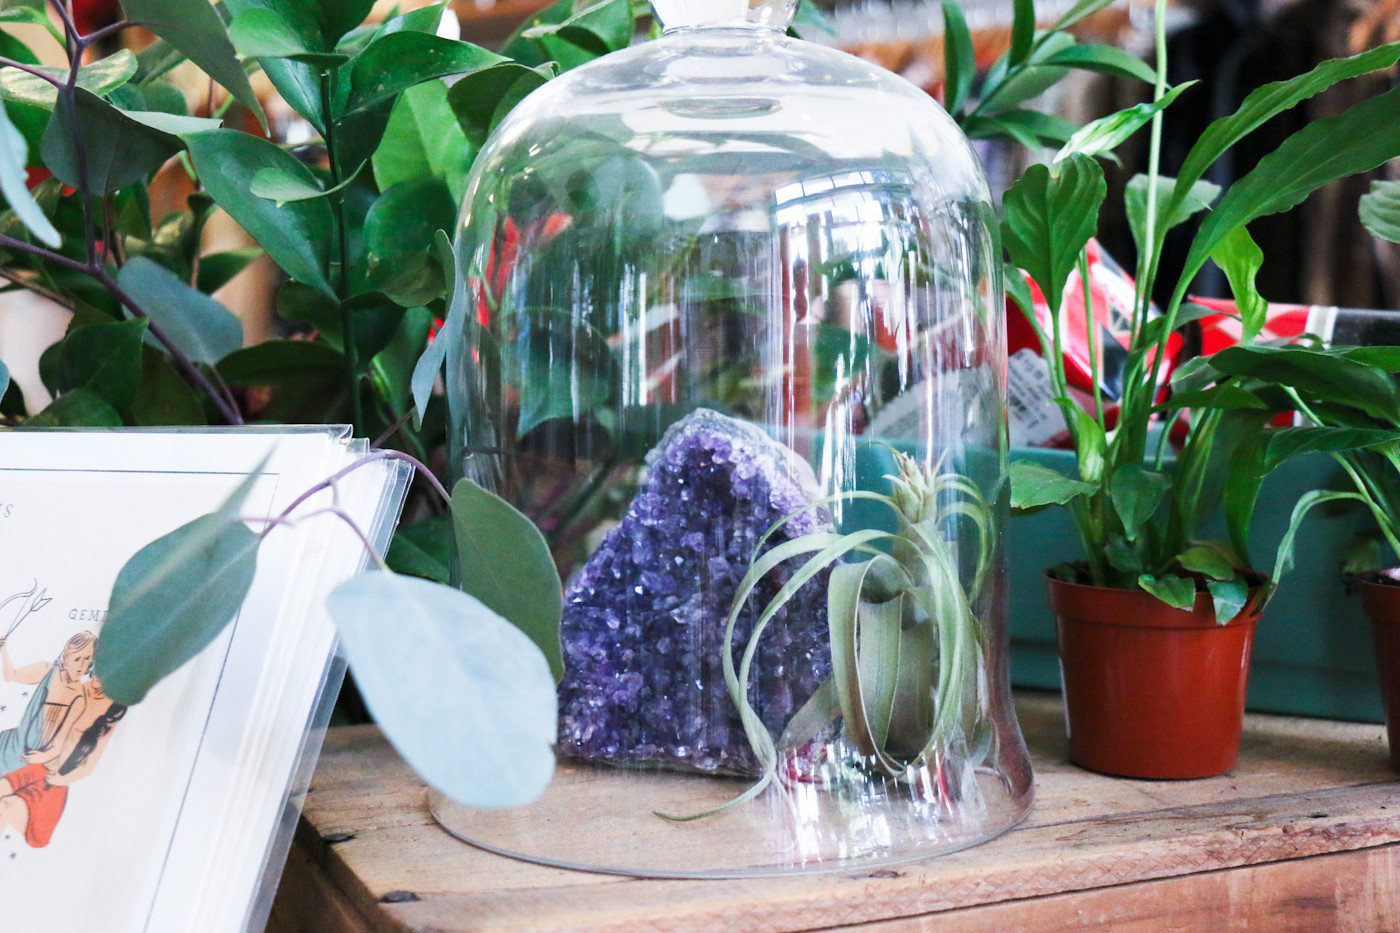 artistic artsy Boutique decor detail Hip hipster interior plants Shop shopping store Style + Design trendy table green plant floristry flower spring Garden glass bell jar fresh